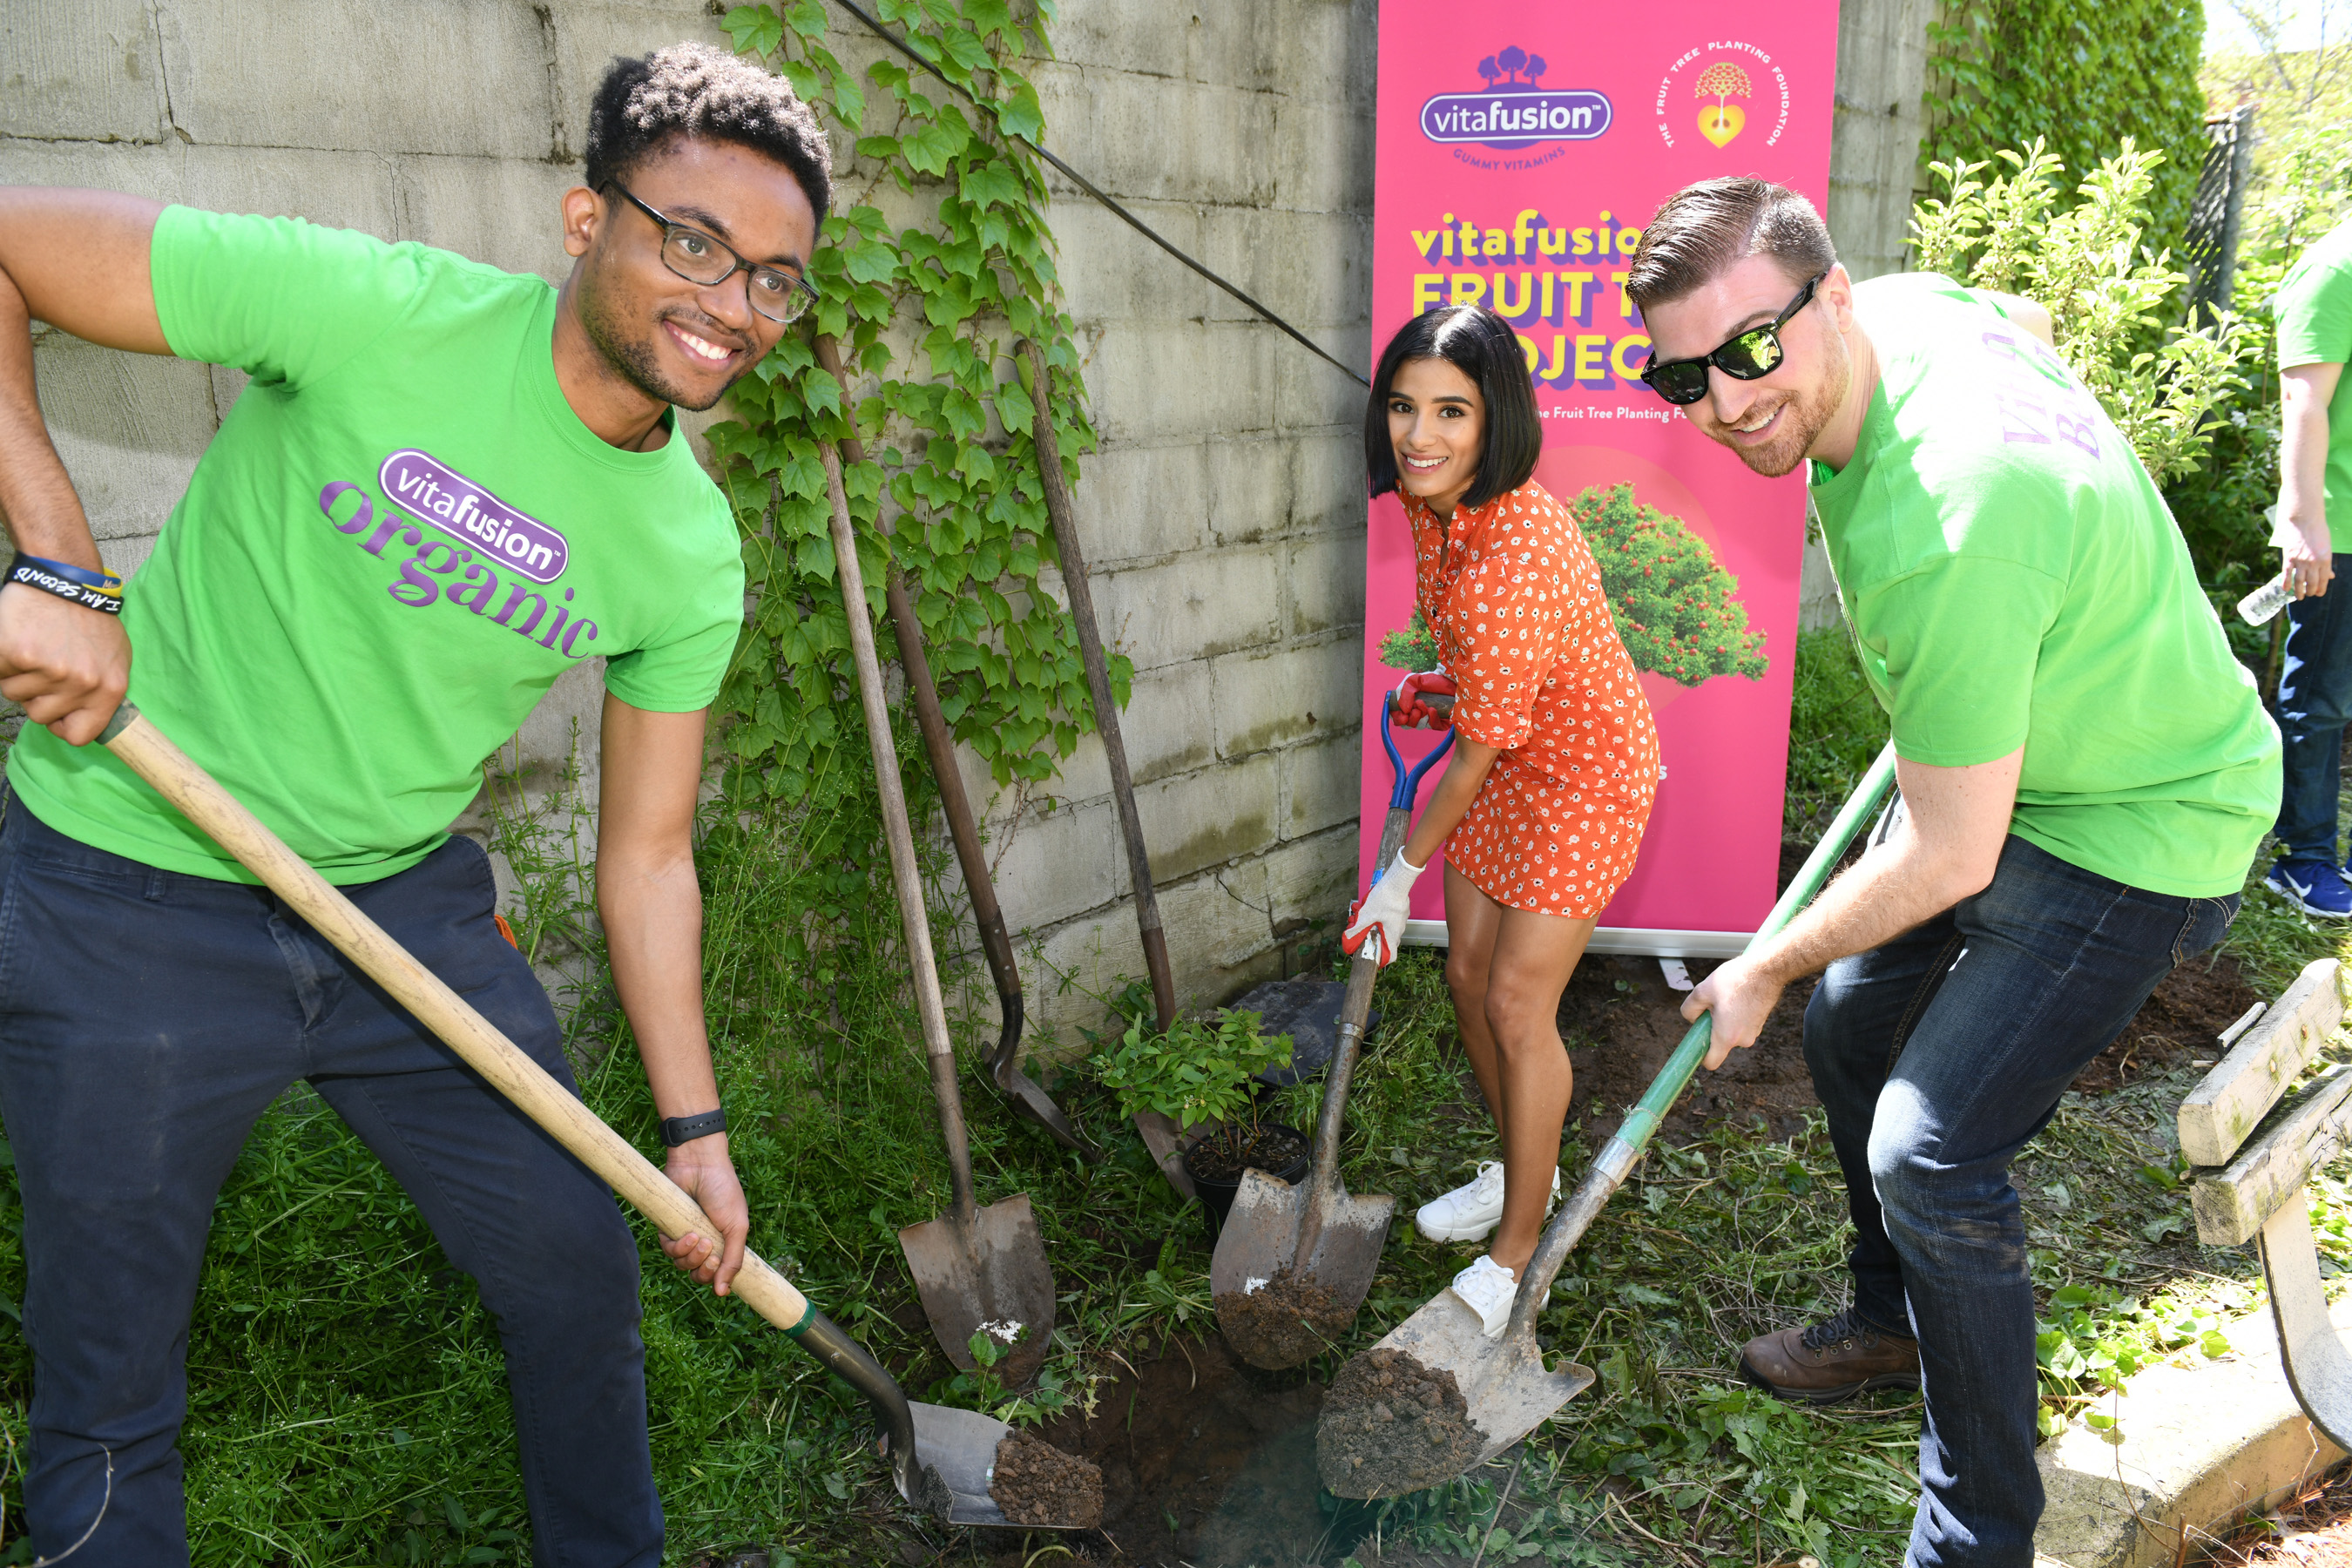 The first planting of the year took place on May 16, 2019 in Williamsburg, Brooklyn at 366 Hewes Street, a building owned and managed by 47-year old nonprofit tenant and community organizing, affordable housing and social services provider Southside United HDFC-Los Sures.